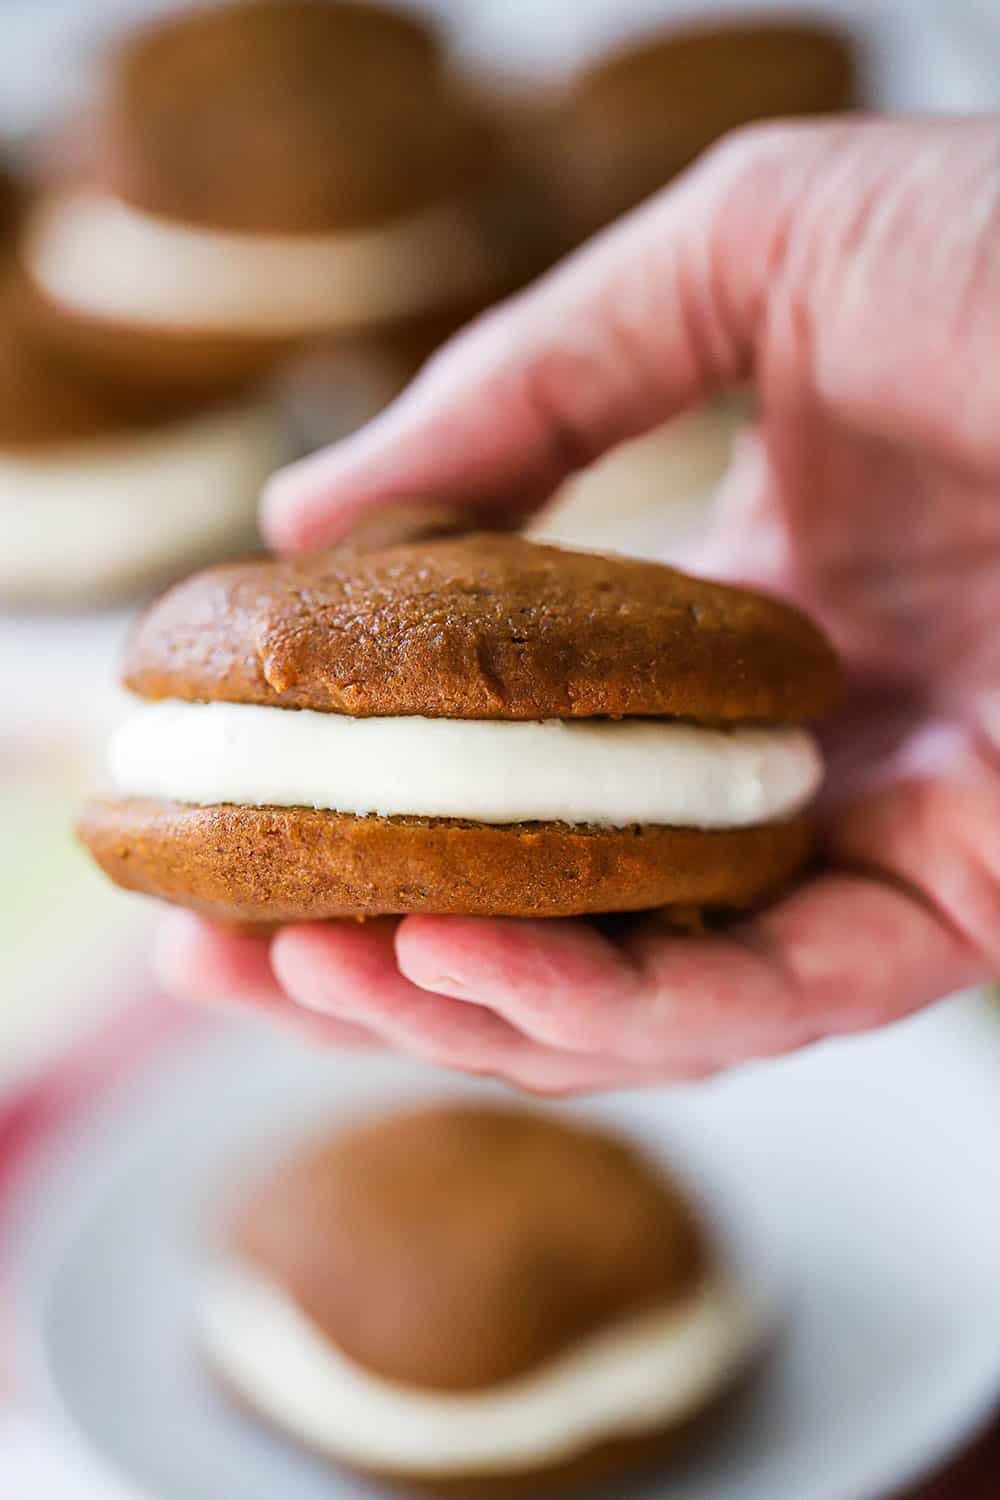 A hand holding a pumpkin whoopi pie filled with cream cheese filling.